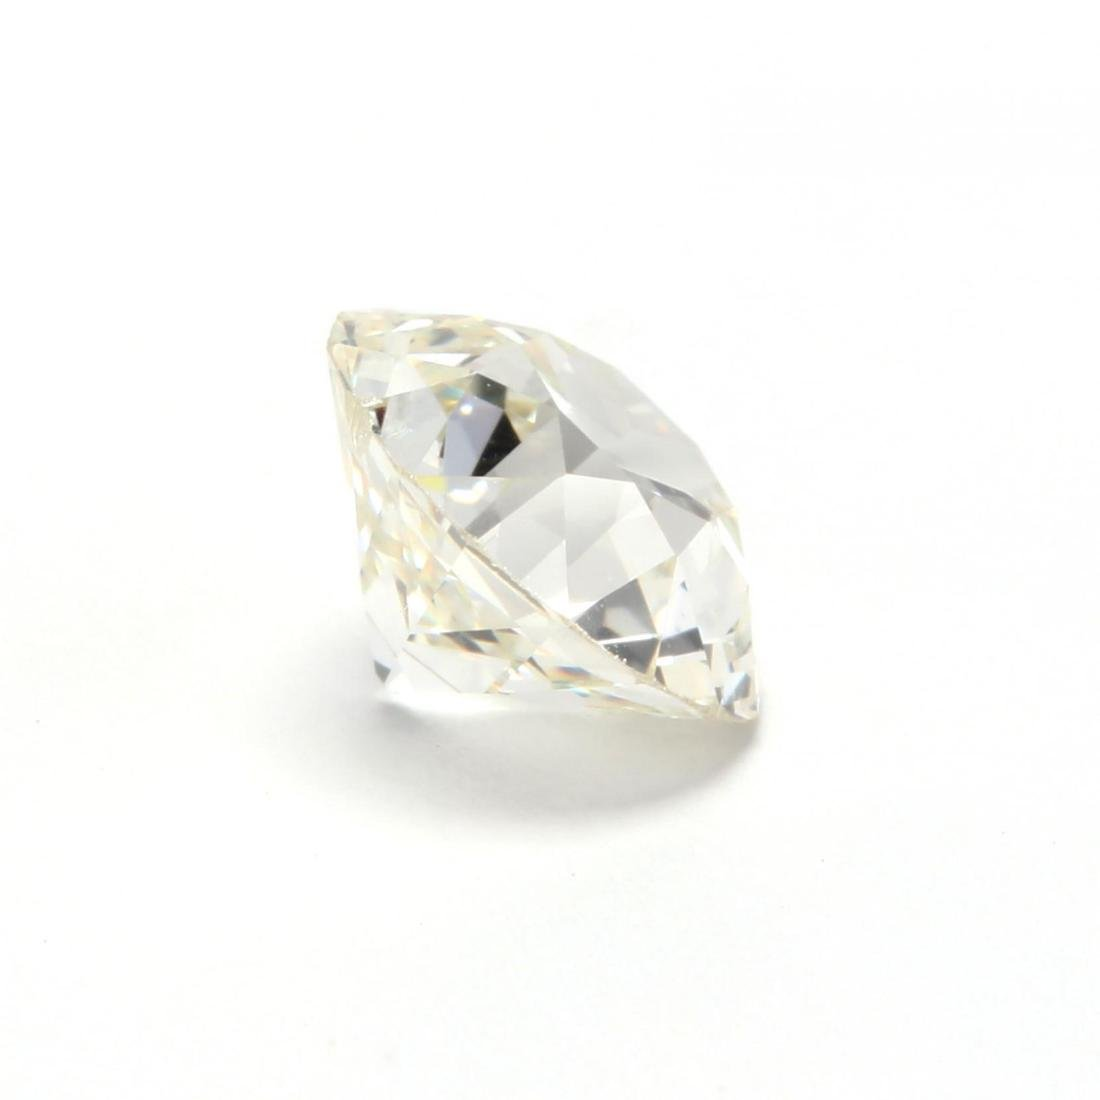 Unmounted Old European Cut Diamond with 14KT White Gold - 3